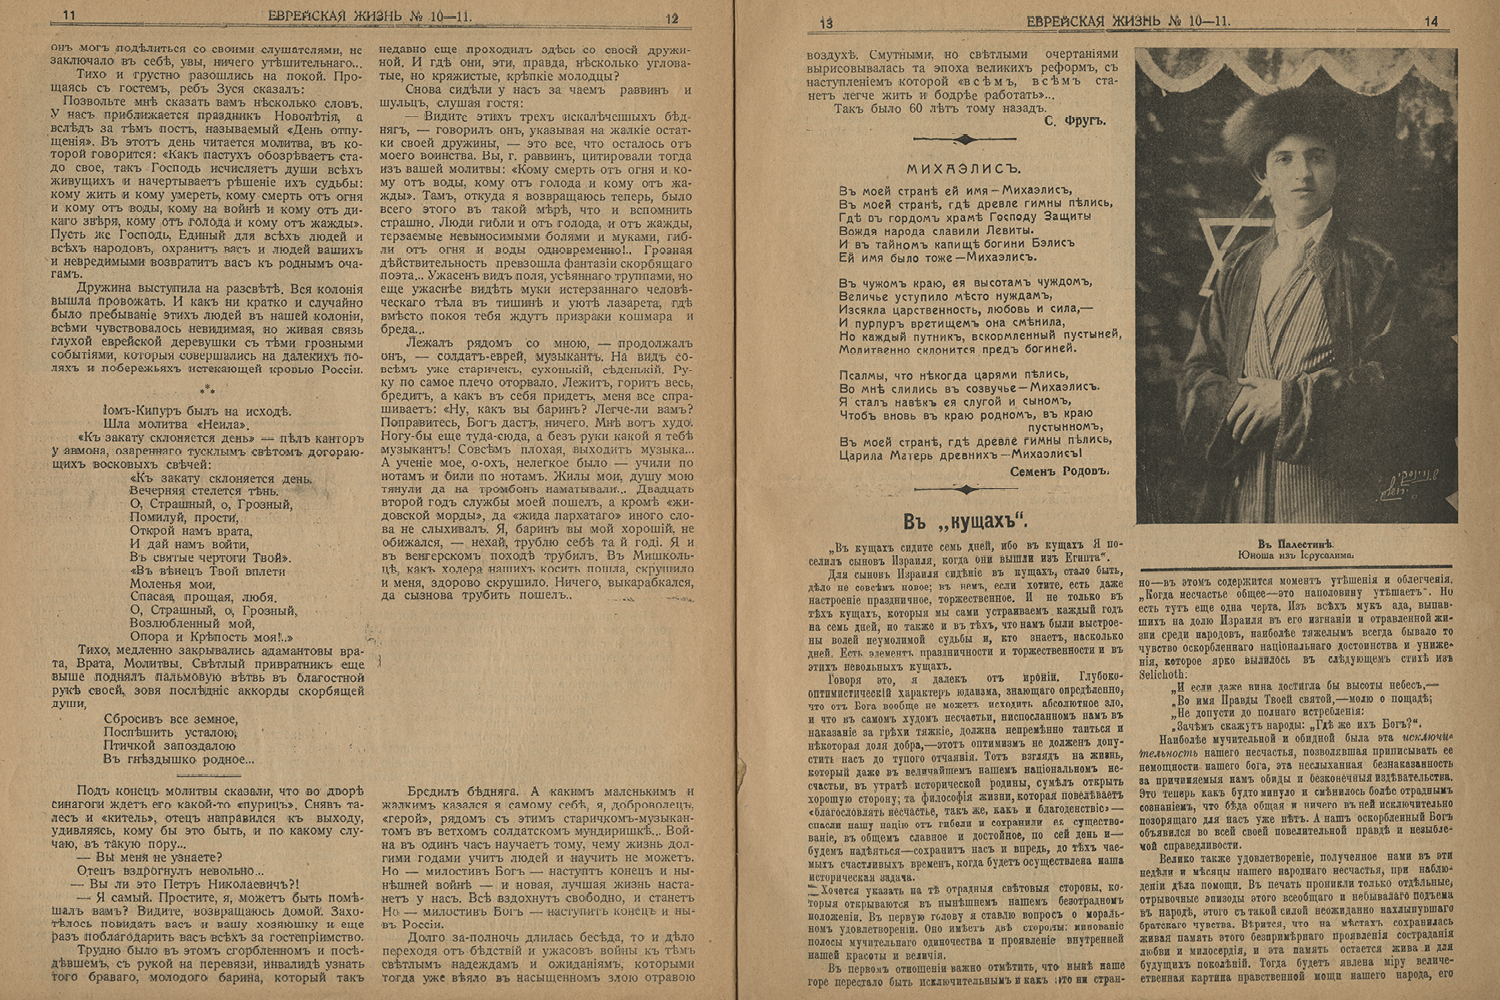 PERIODICALS & NEWSPAPERS -